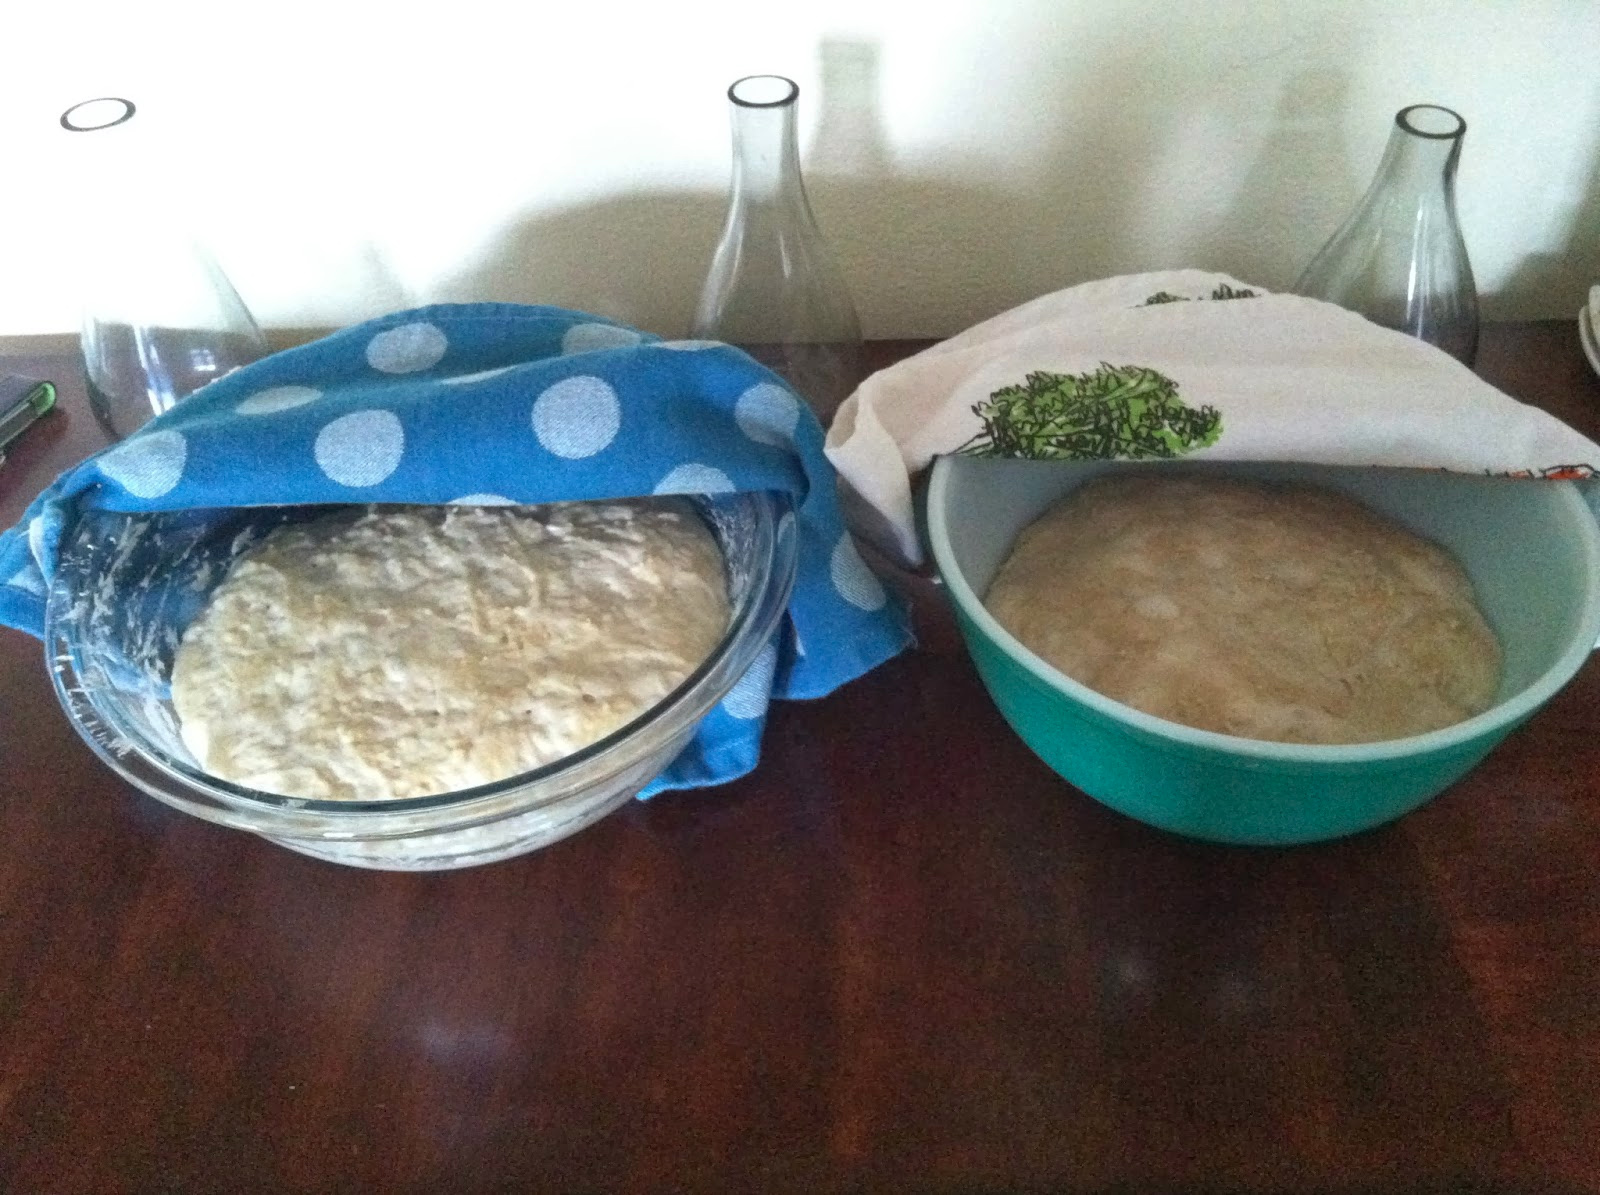 The bowl on the right is the wrong flour, the one on the left is the correct flour